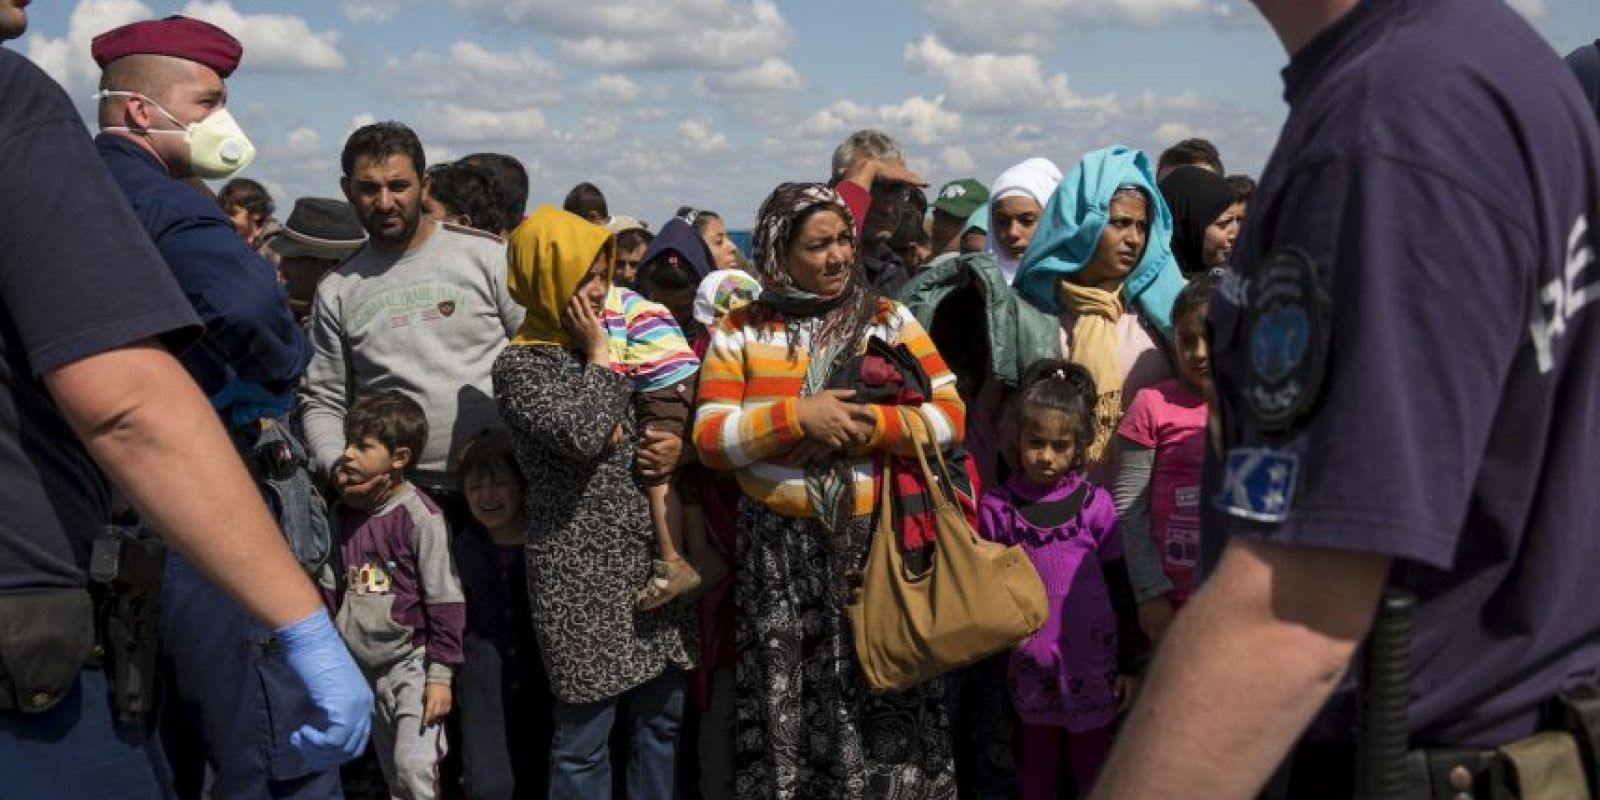 10. Portugal- Recibirá a tres mil 074 refugiados. Foto: Getty Images